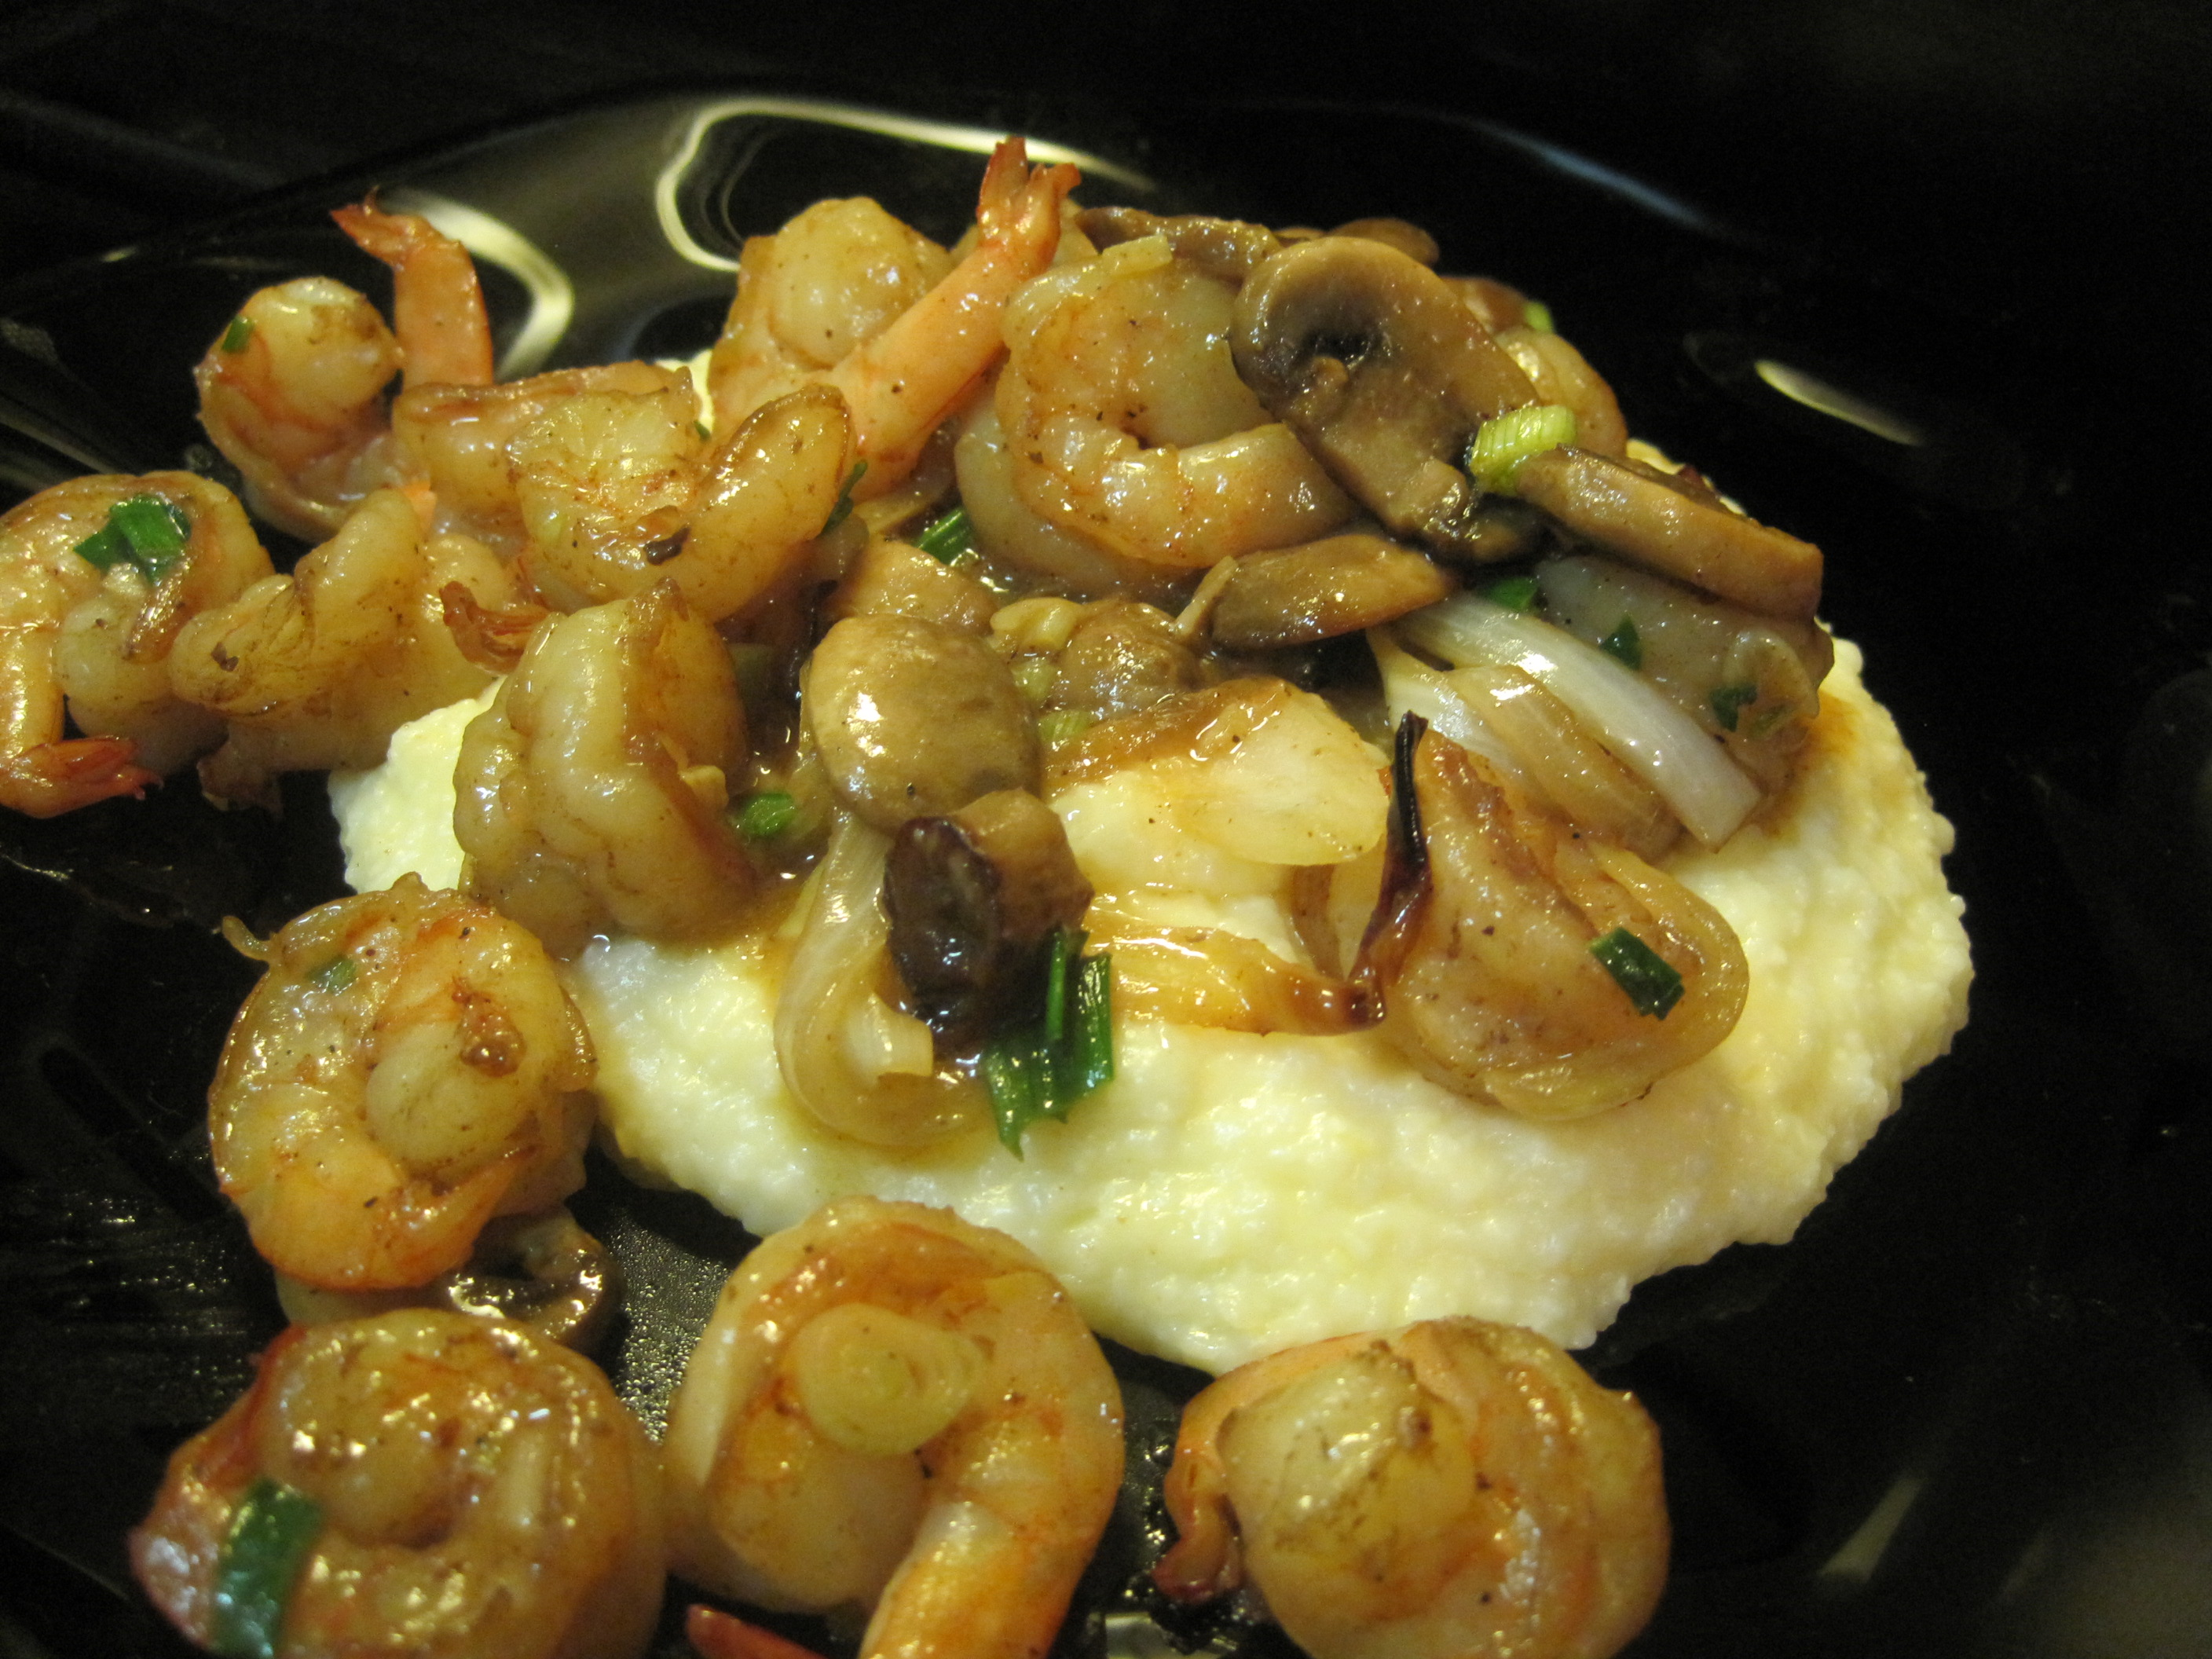 Cheese Grits with Shrimps & Mushrooms